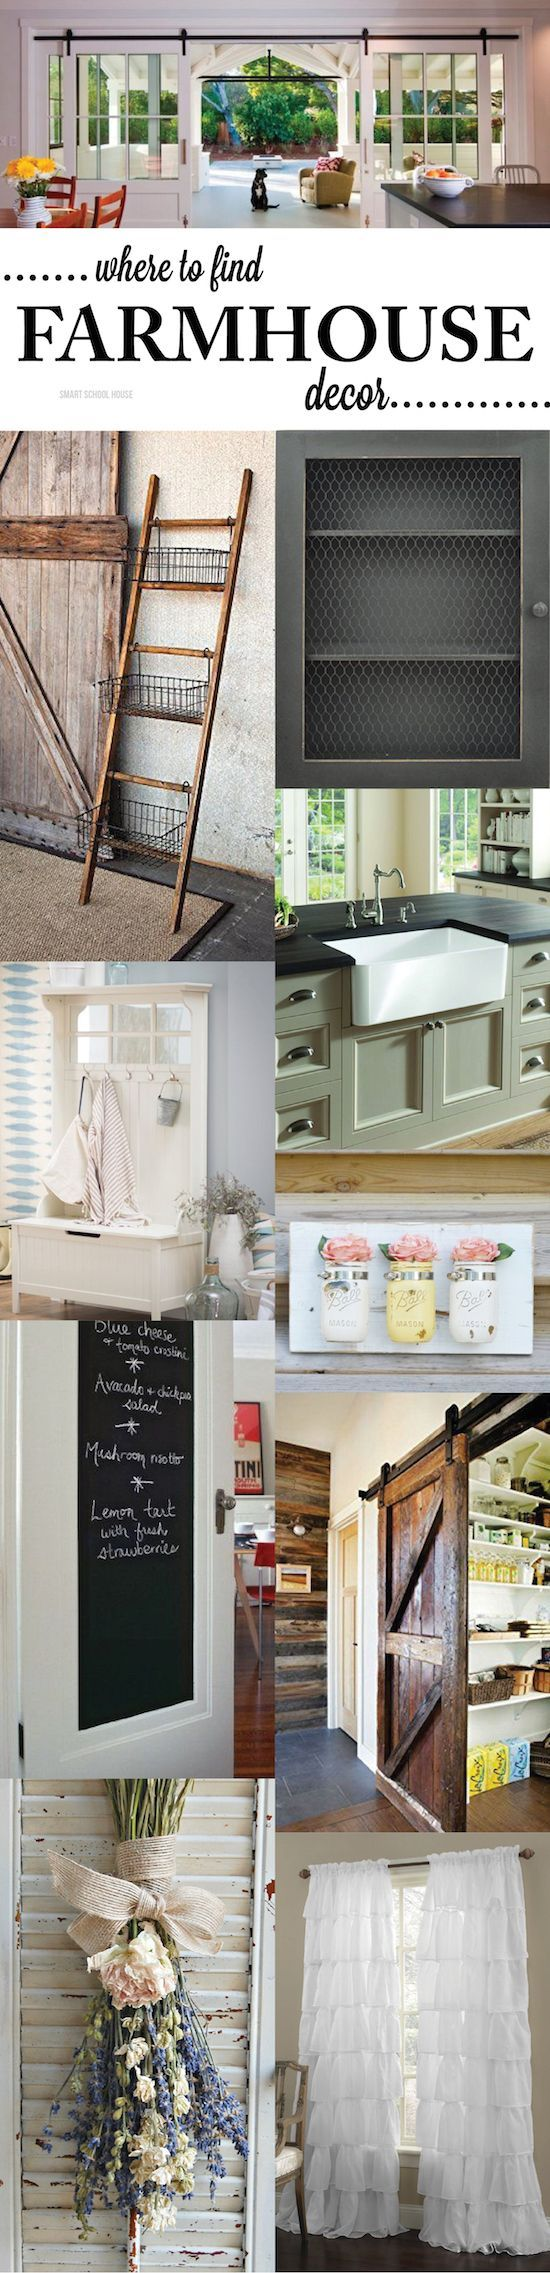 Where to find farmhouse decor! Tips and tricks for bringing farm ...